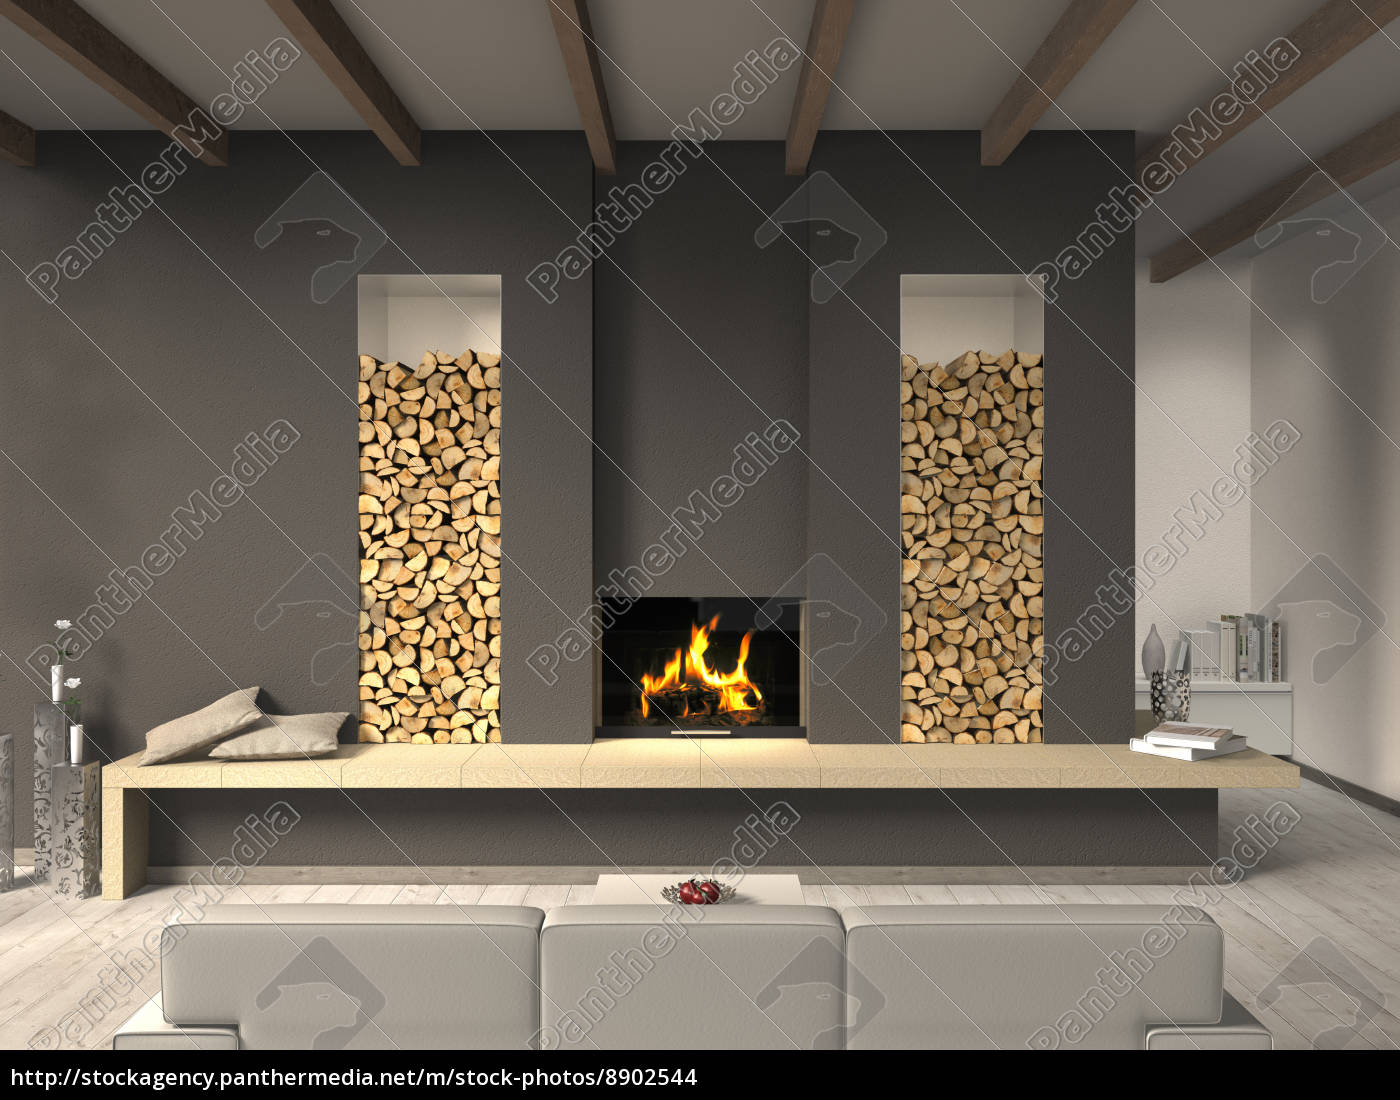 wohnzimmer mit kamin und balkendecke lizenzfreies foto 8902544 bildagentur panthermedia. Black Bedroom Furniture Sets. Home Design Ideas